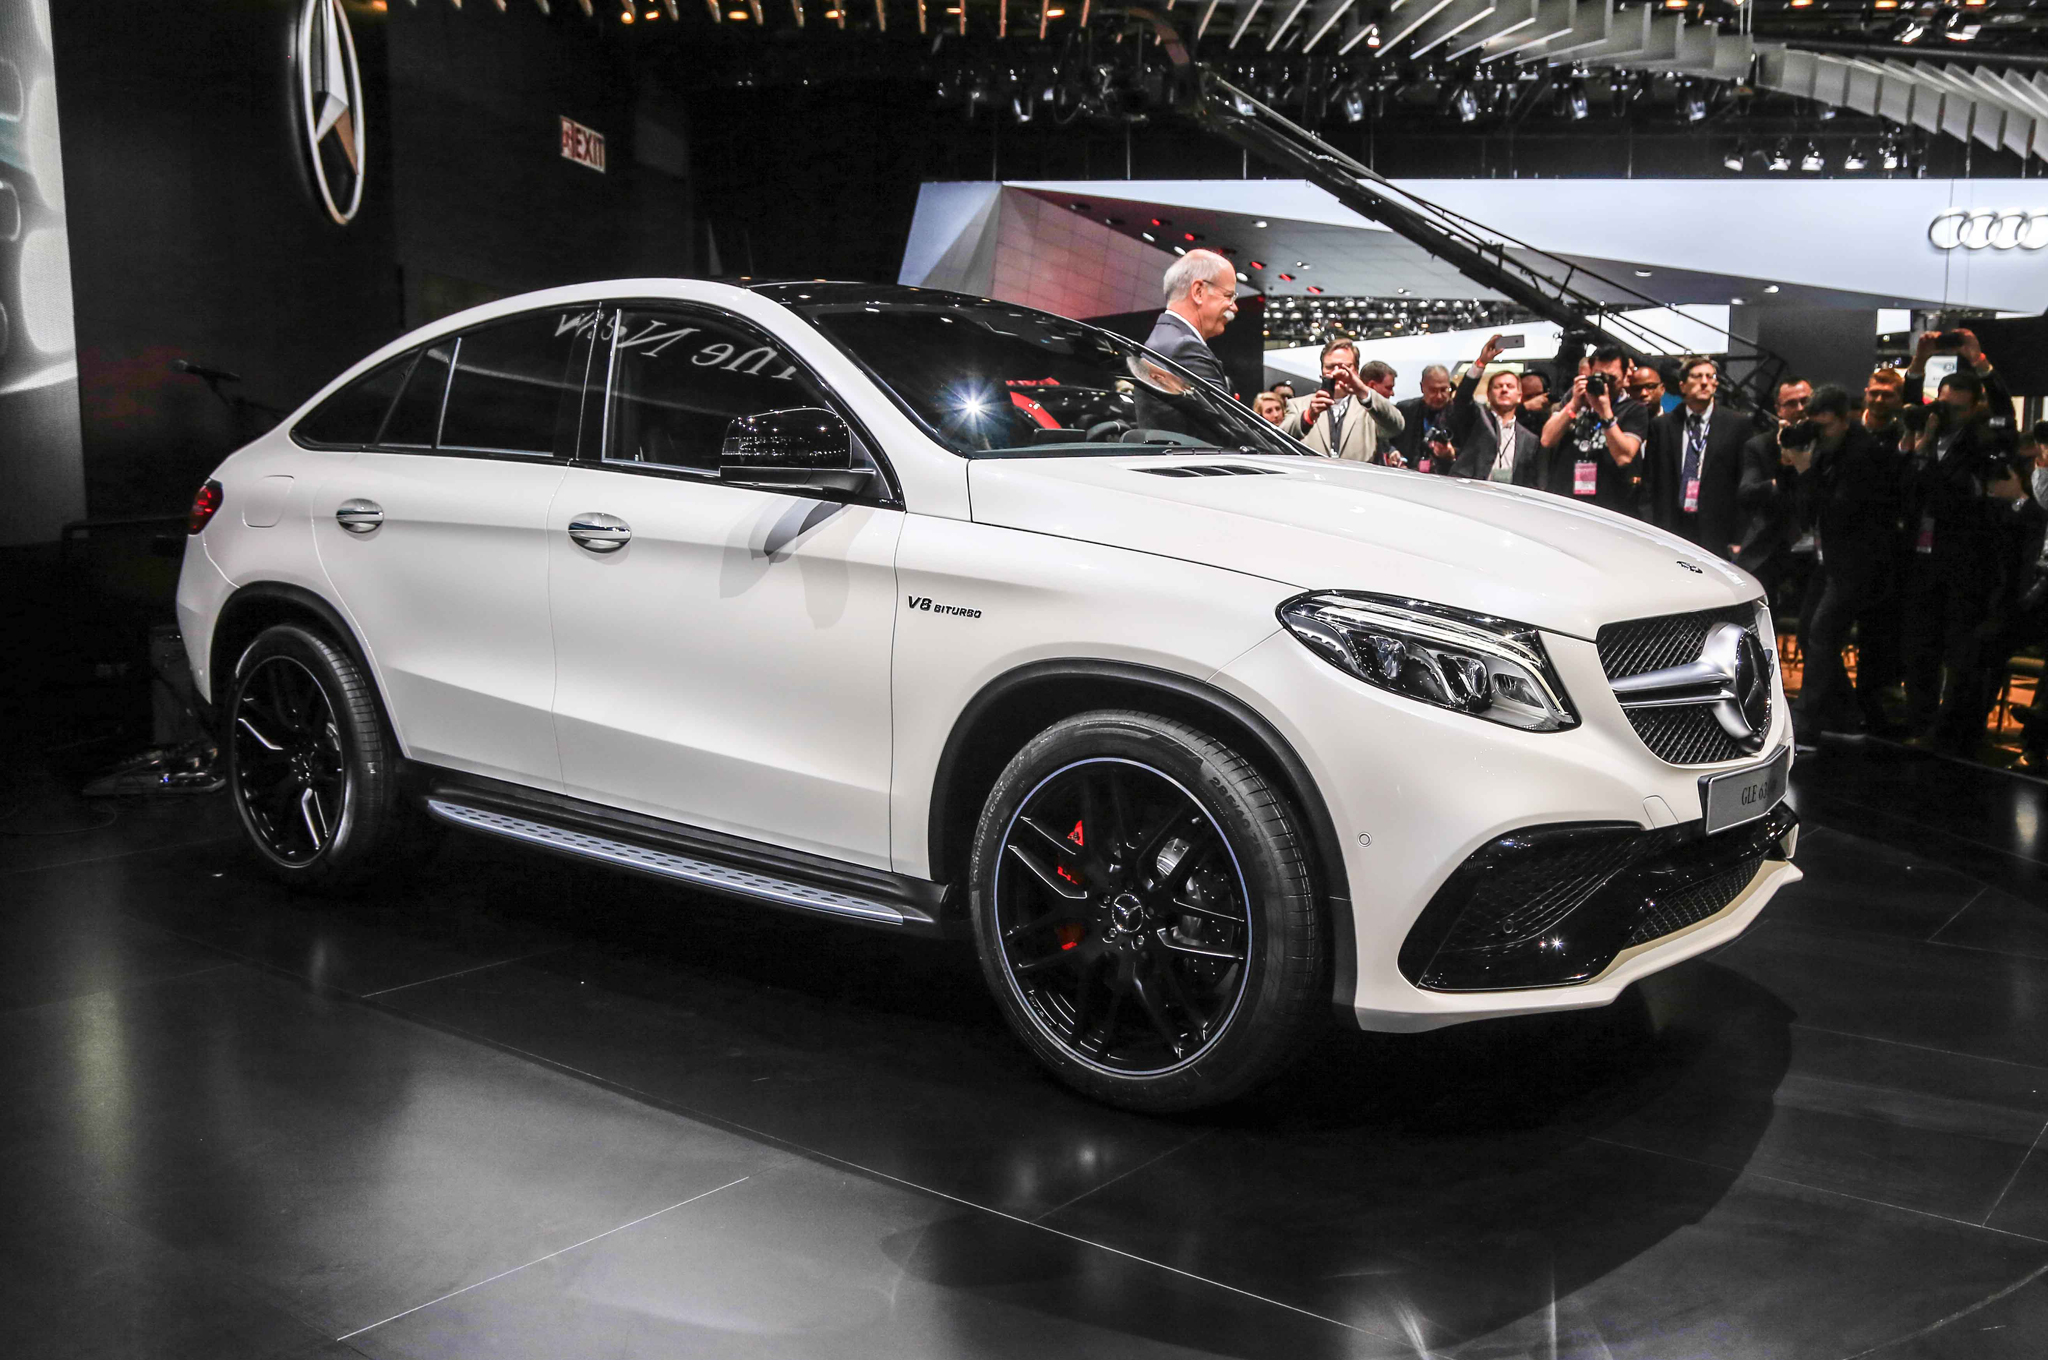 2016 Mercedes-AMG GLE63 S 4MATIC | Cars Exclusive Videos ...